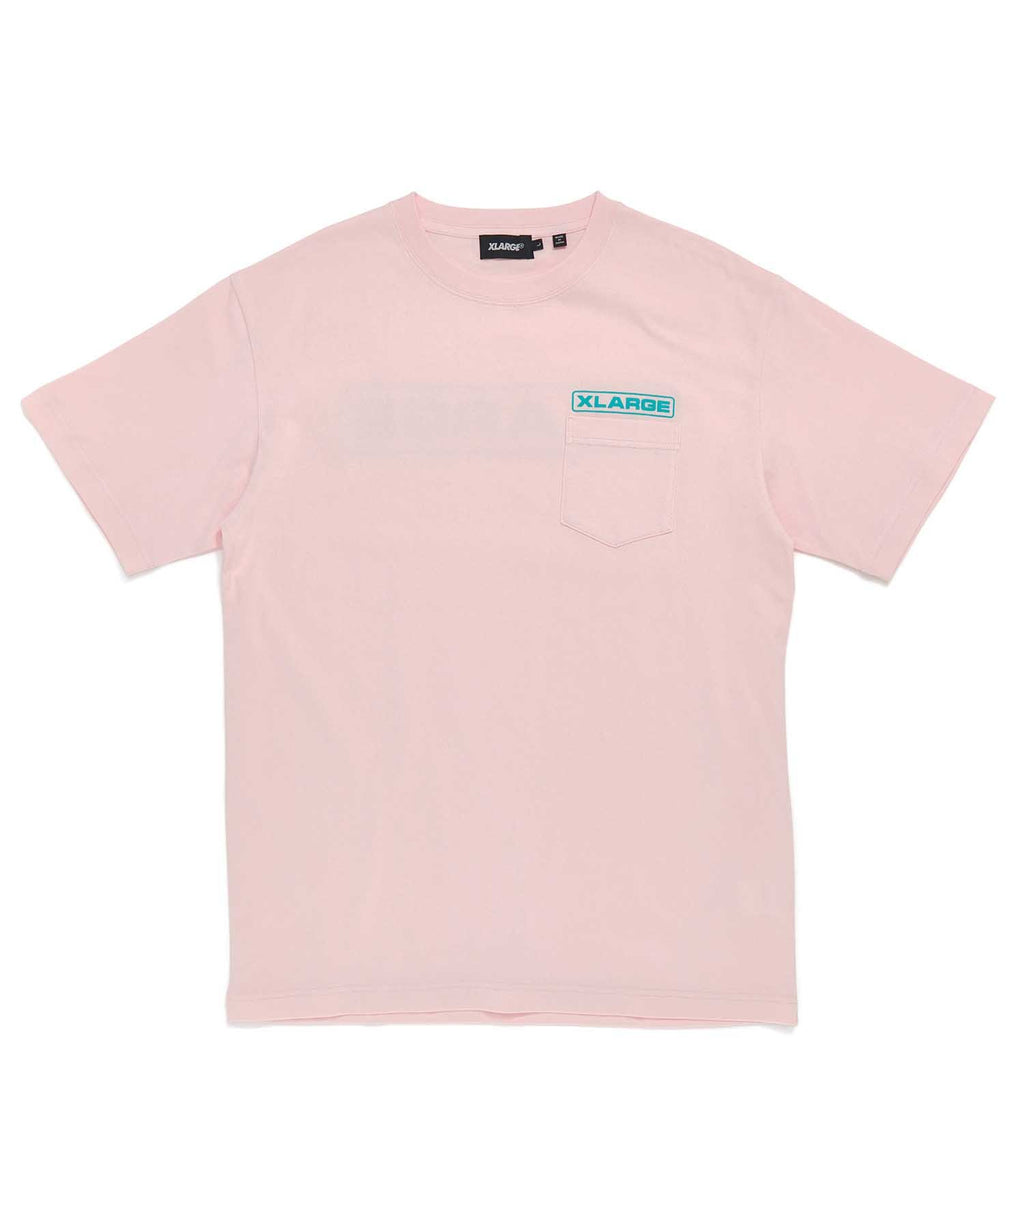 S/S ROUNDED LOGO POCKET TEE - PINK